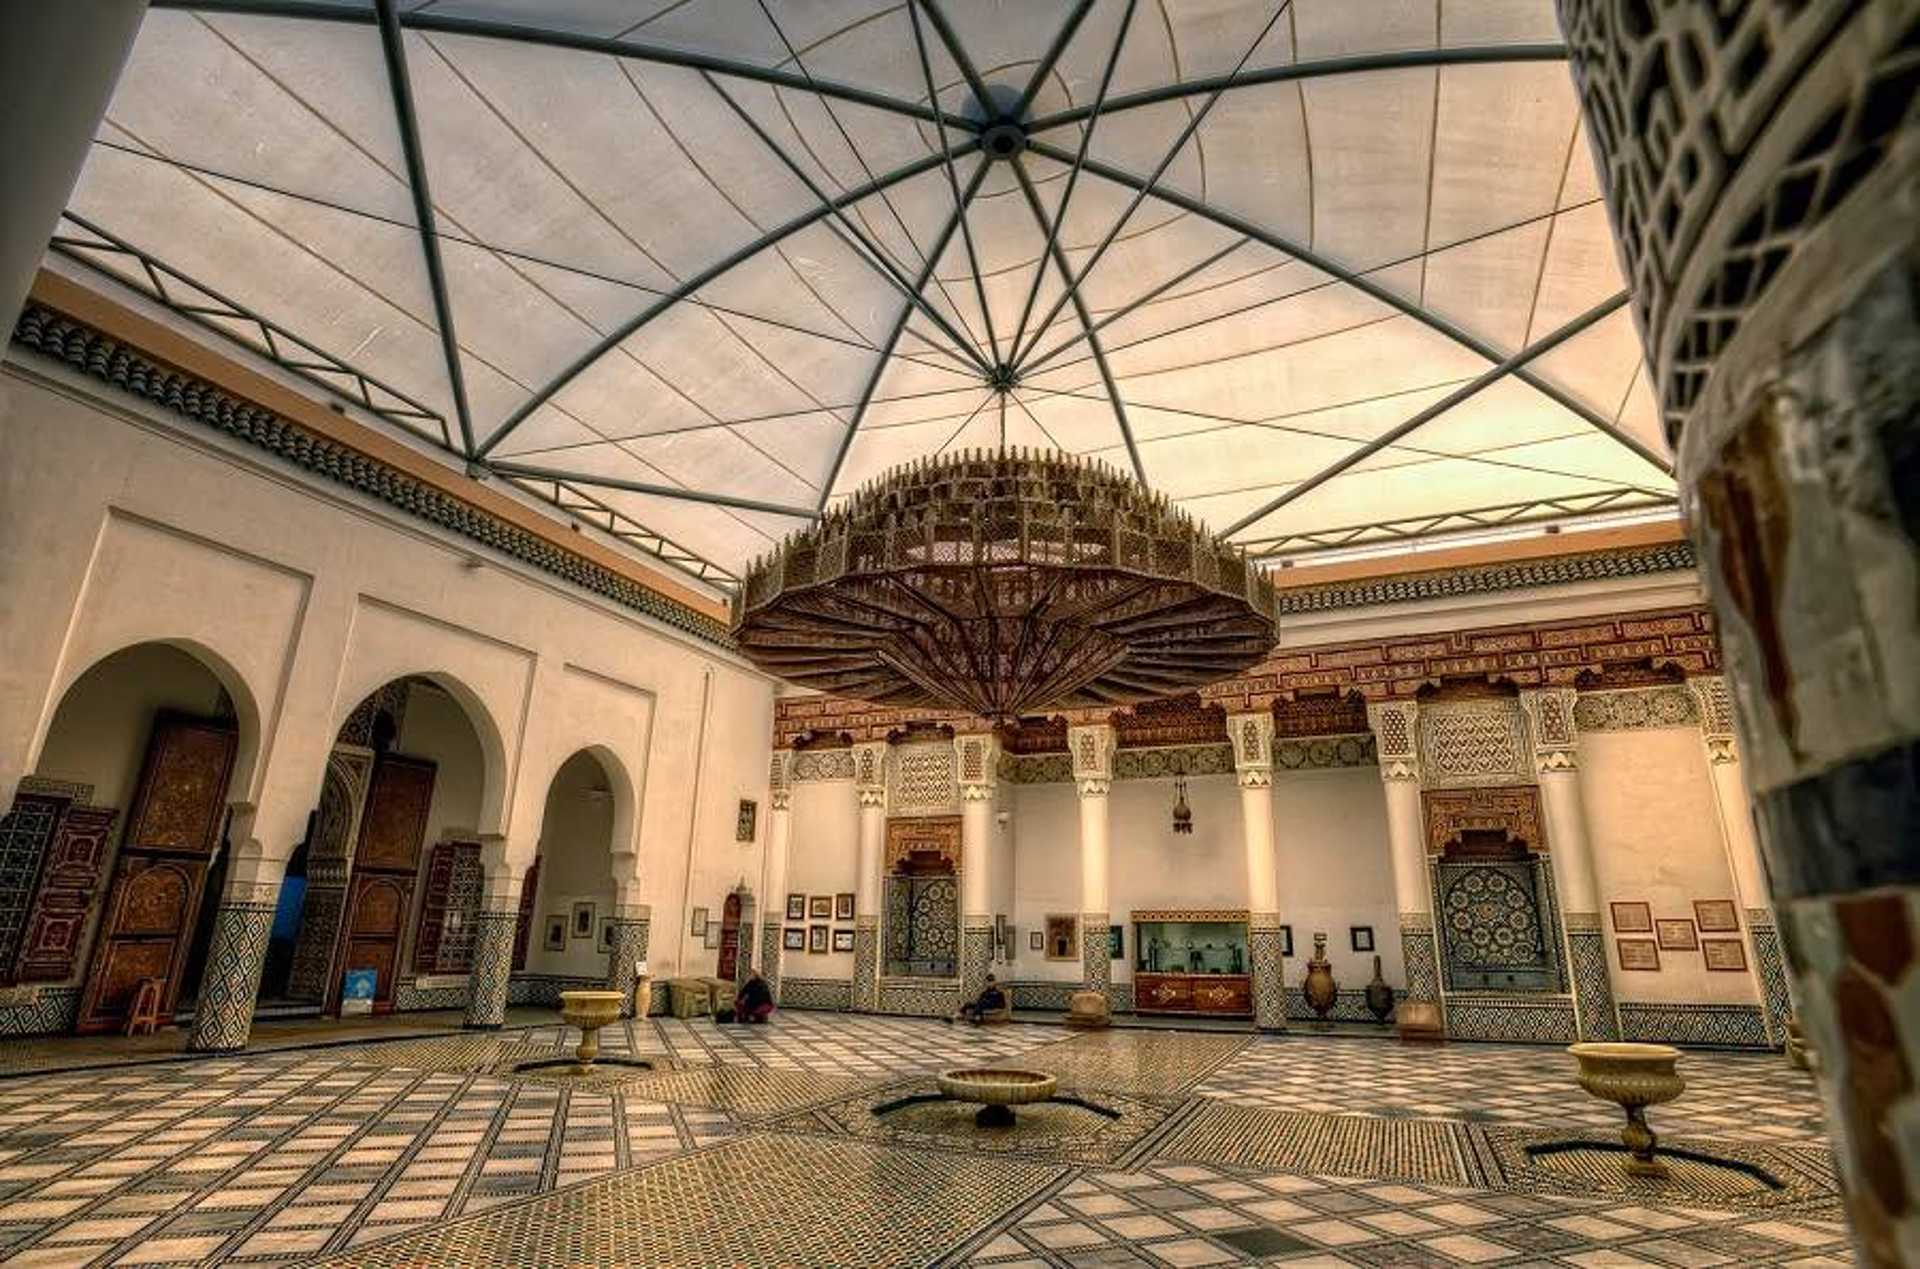 2.1 - Explore the Marrakech Museum that houses modern and classic works of art